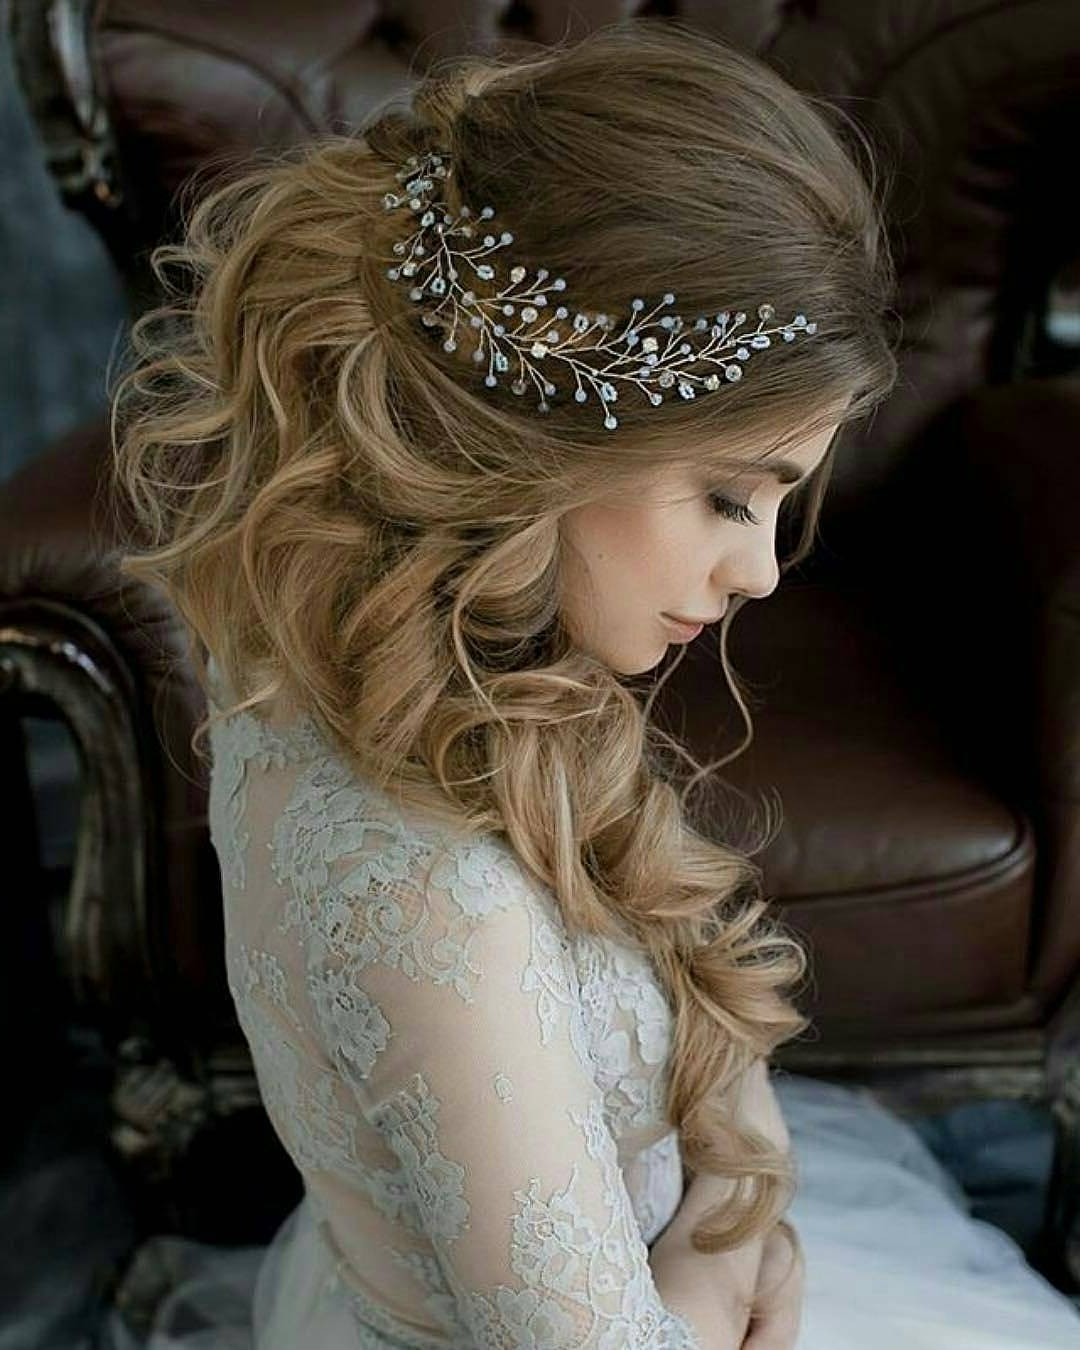 10 Lavish Wedding Hairstyles For Long Hair – Wedding Hairstyle Ideas For Most Current Long Hair Up Wedding Hairstyles (View 4 of 15)